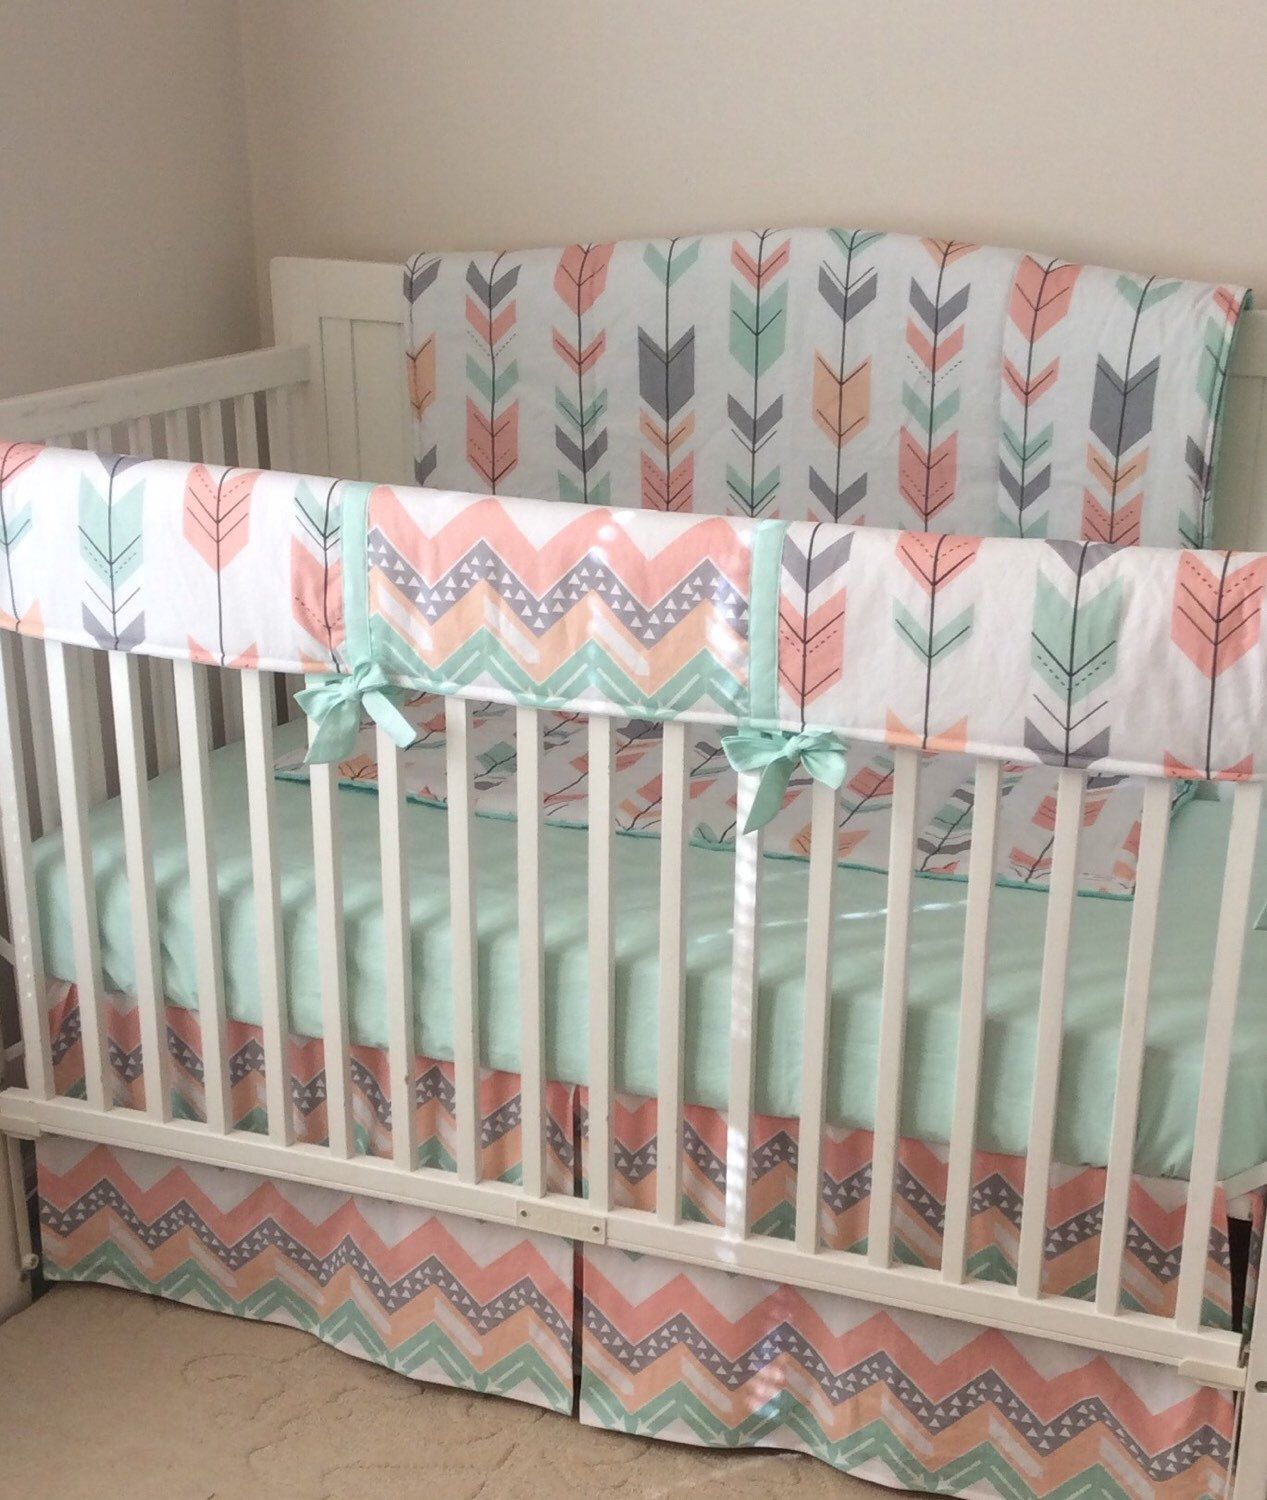 Coral Peach Pint And Gray Arrows Crib Bedding A Personal Favorite